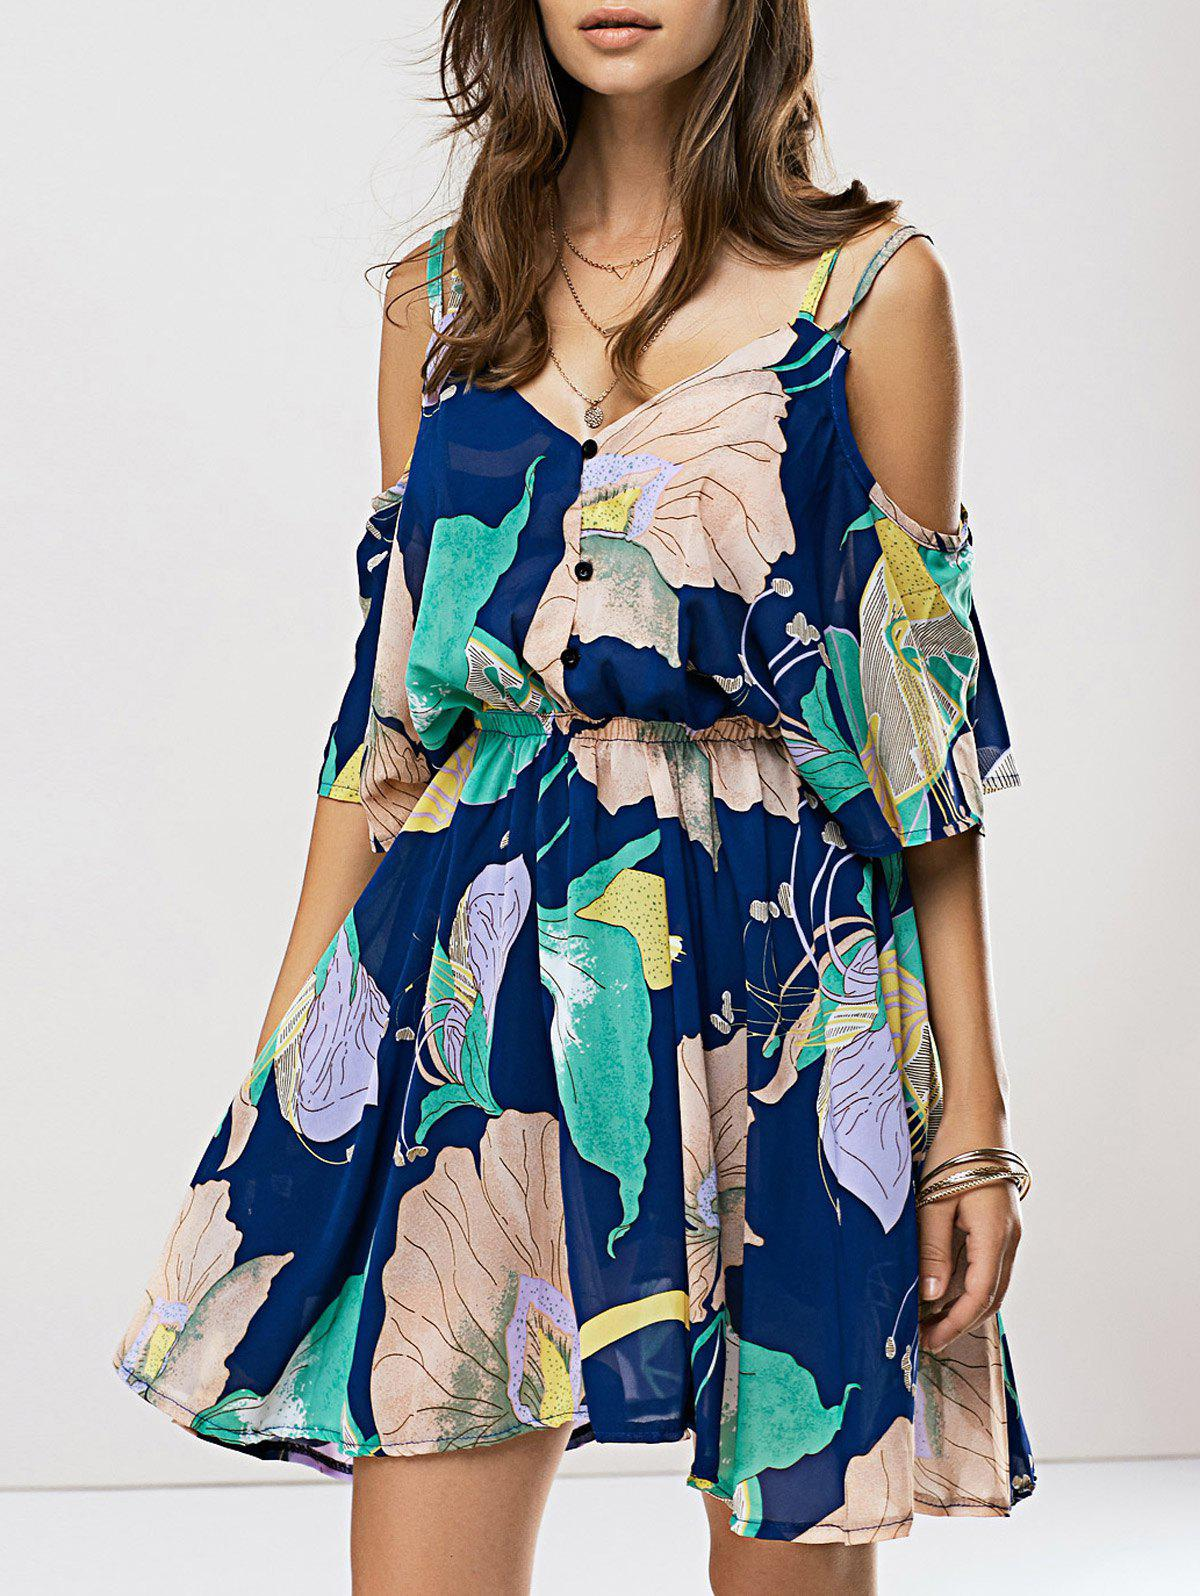 Floral Print Spaghetti Strap Chiffon DressWomen<br><br><br>Size: ONE SIZE(FIT SIZE XS TO M)<br>Color: BLUE